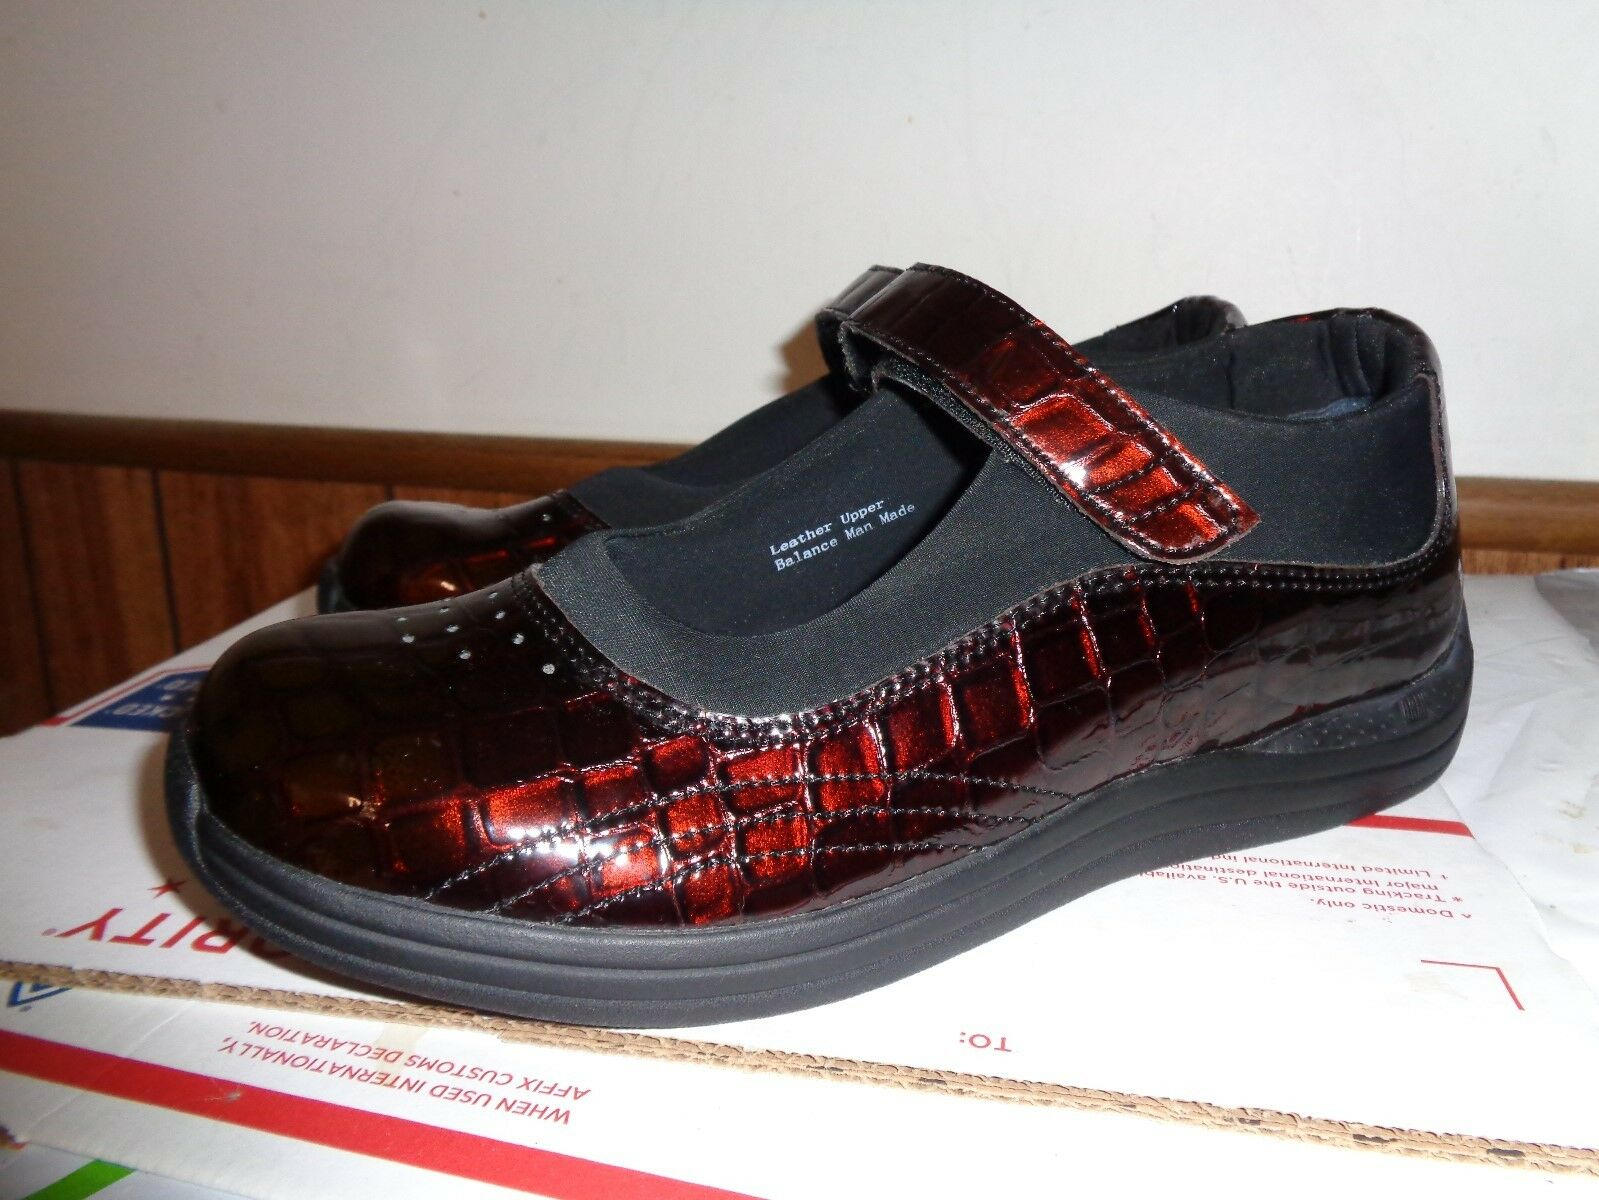 NEW DREW Women's Orthopaedic Cordovan  Mary Jane shoes Patent Leather 9M